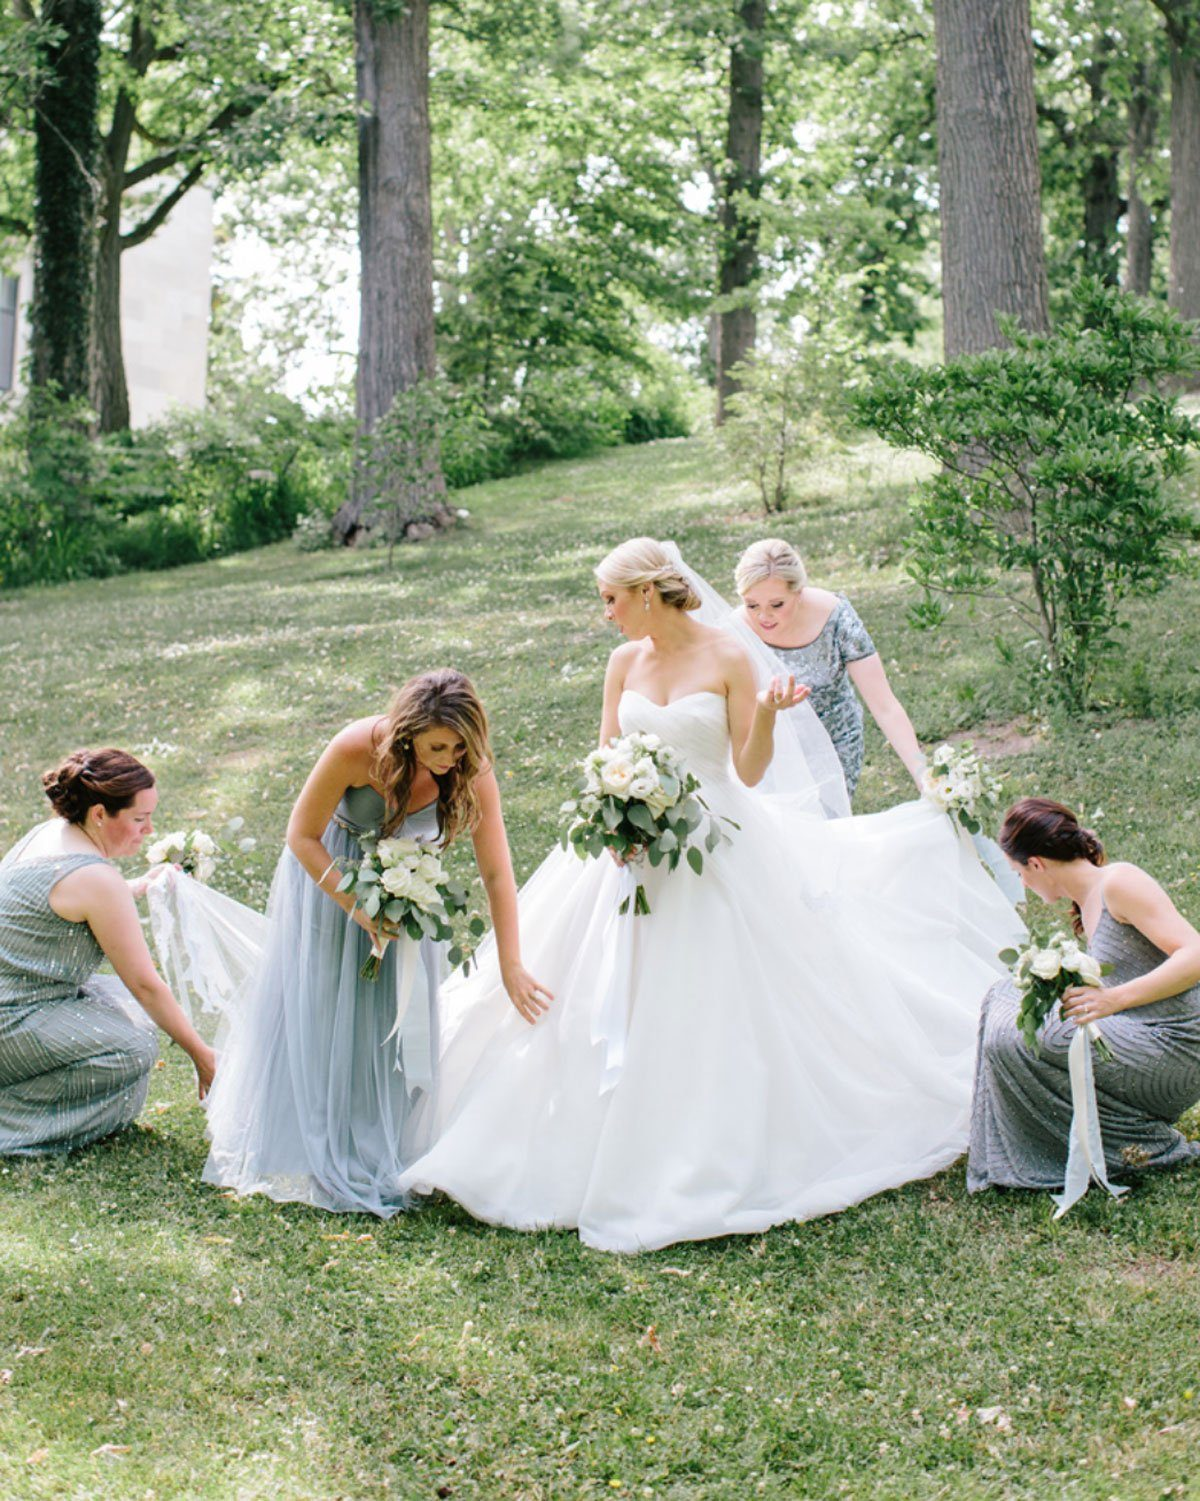 Bridesmaids helping Bride with classic tulle wedding dress